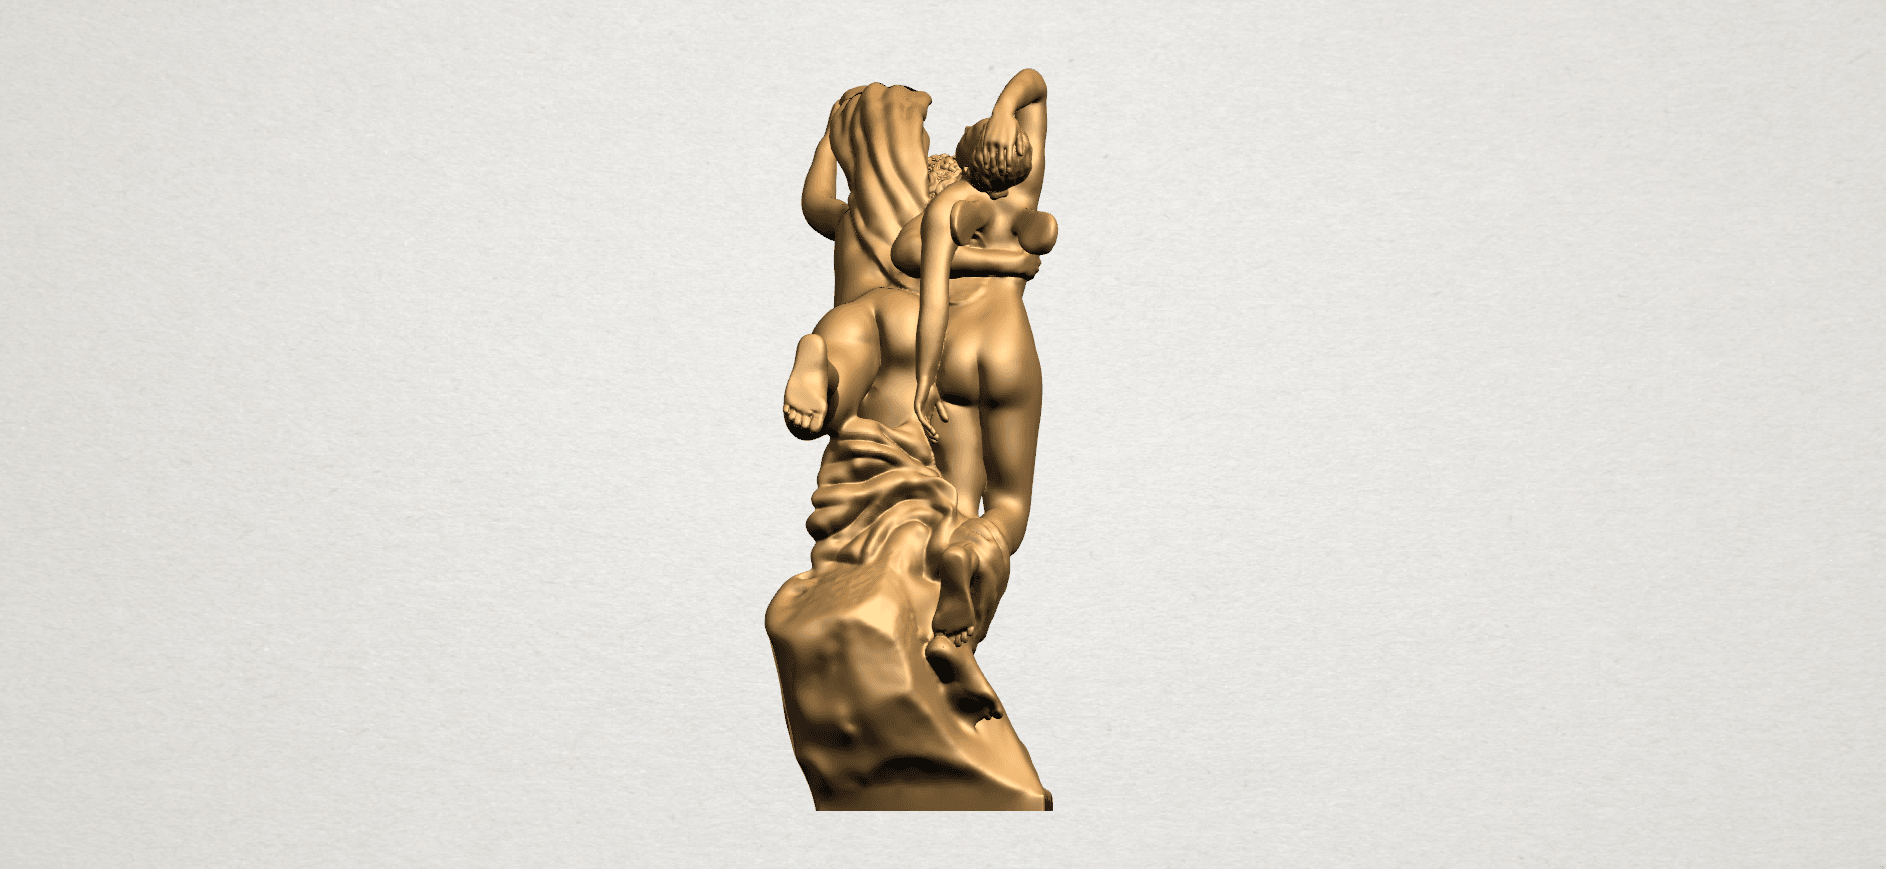 Cupid and Psyche - A04.png Download free STL file Cupid and Psyche • 3D printing template, GeorgesNikkei